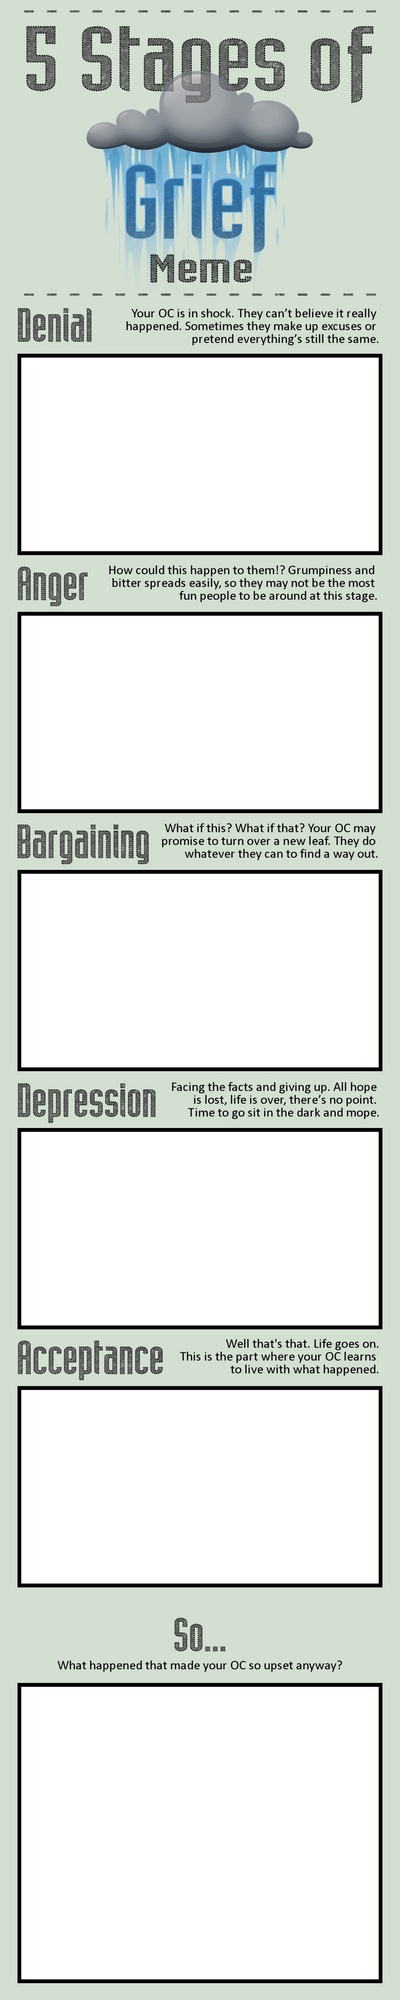 5 Stages of Grief Meme